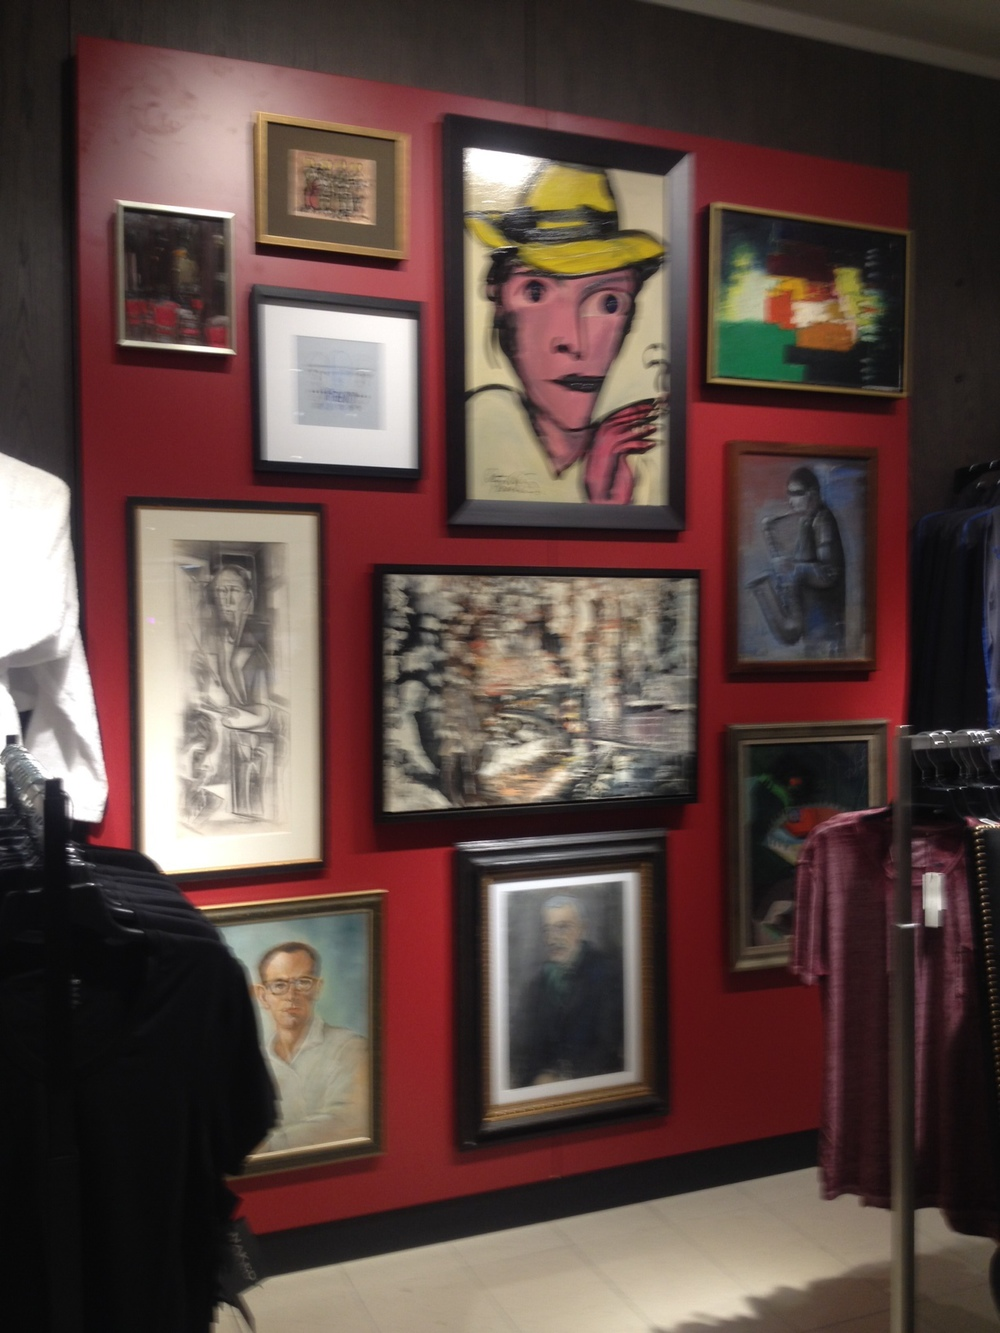 We were surprised to find artwork throughout the store from Canadian artists.